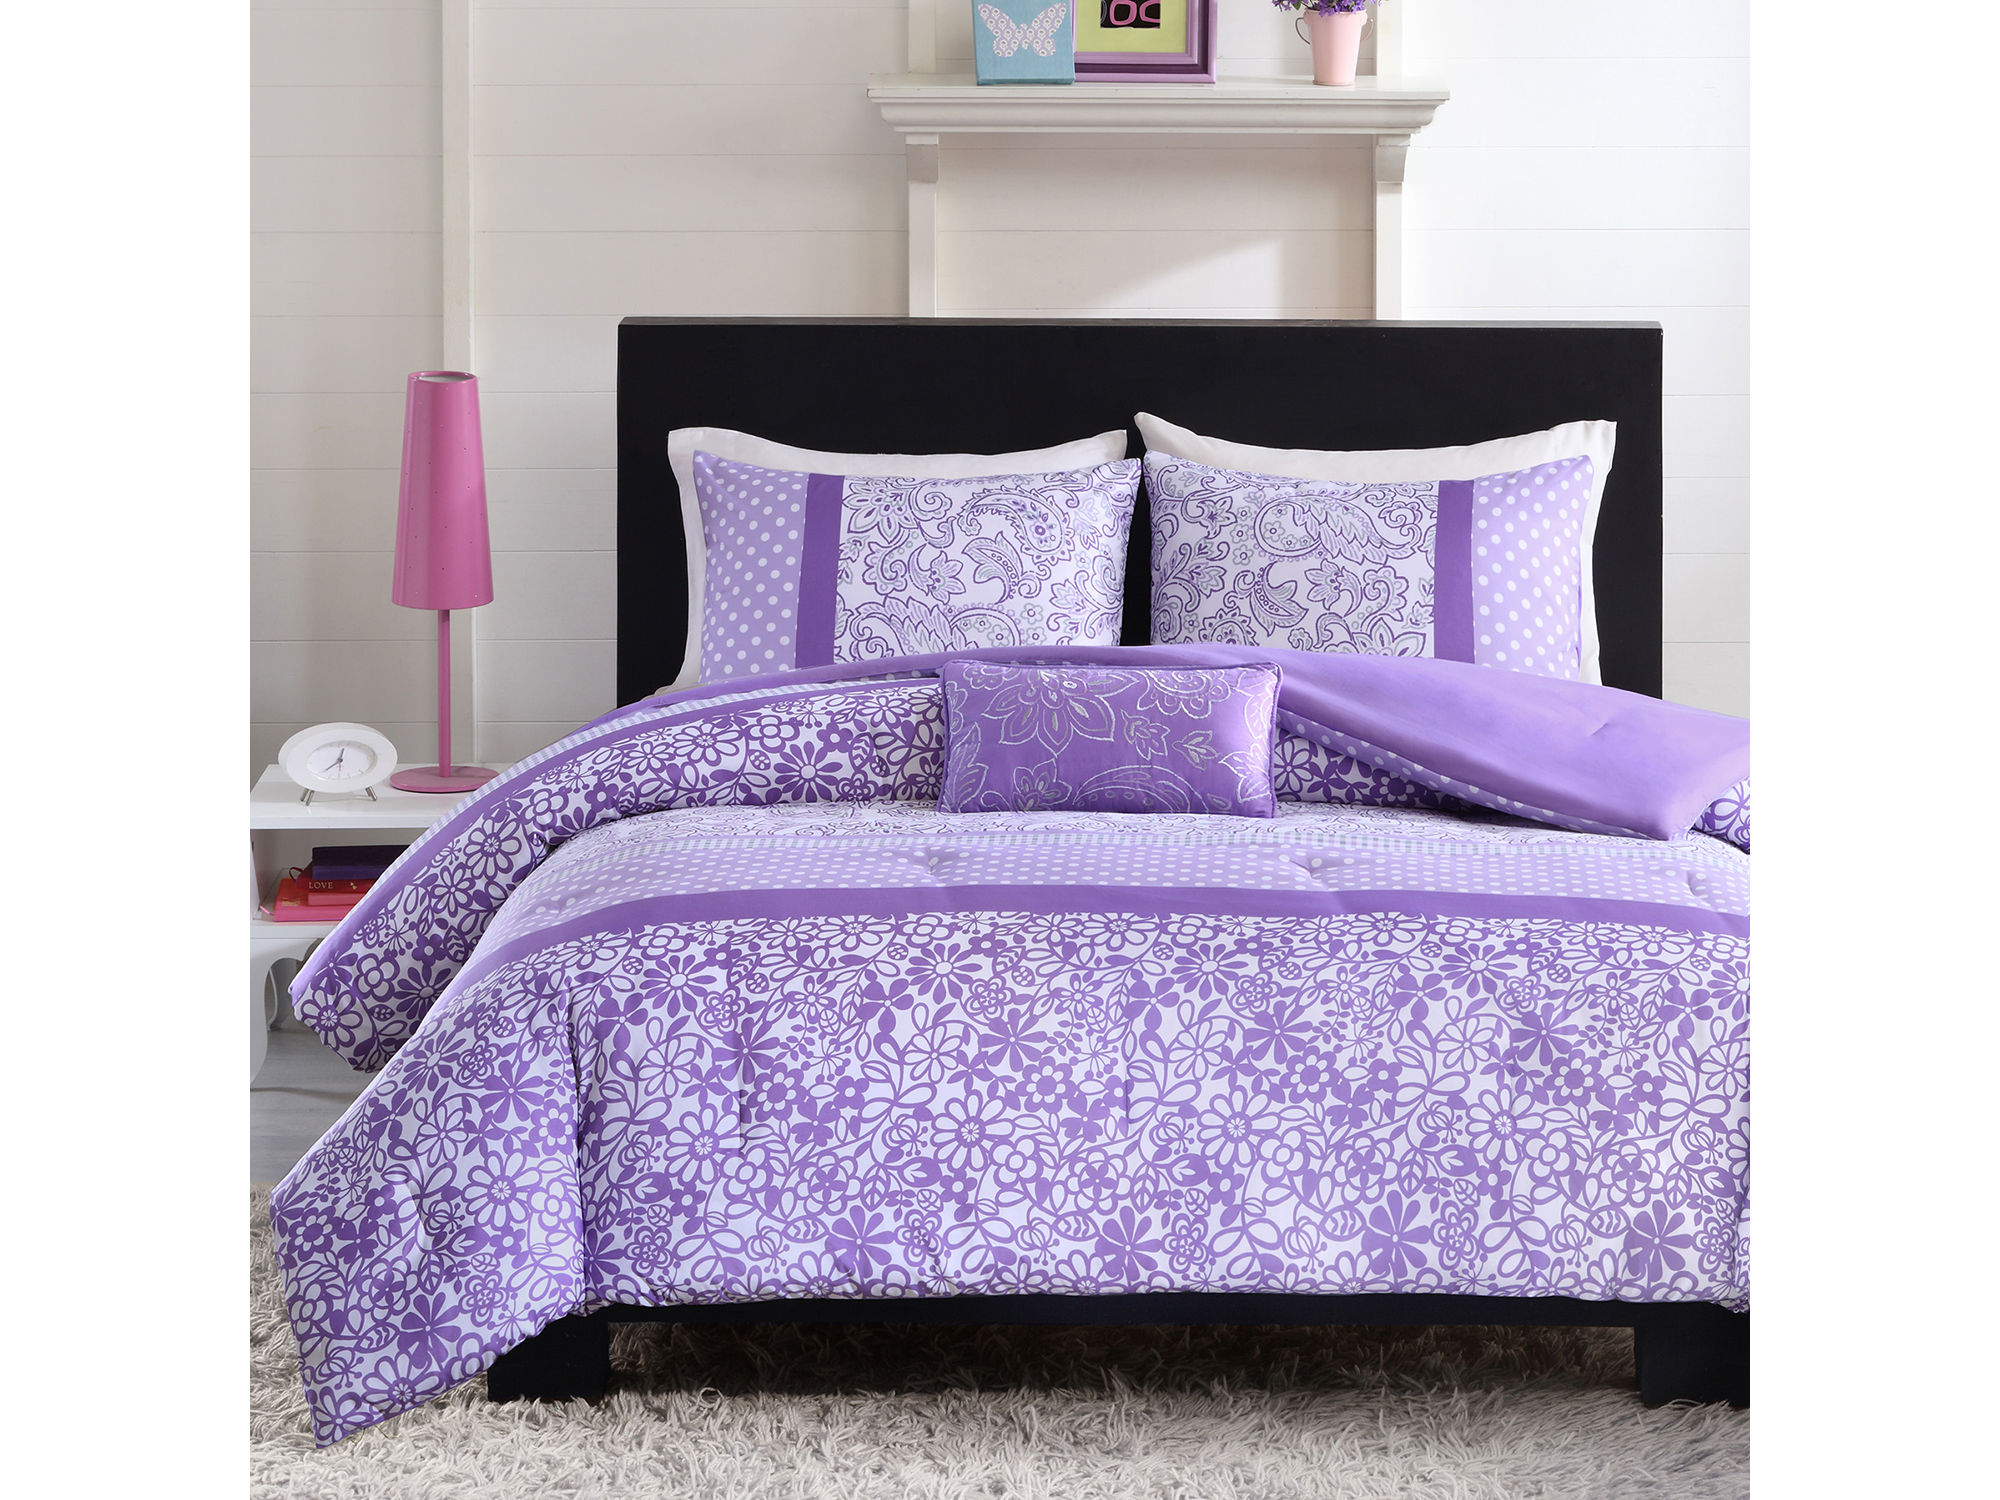 Buy Cathay Home Demetri Comforter Set Now Bedding Sets Store